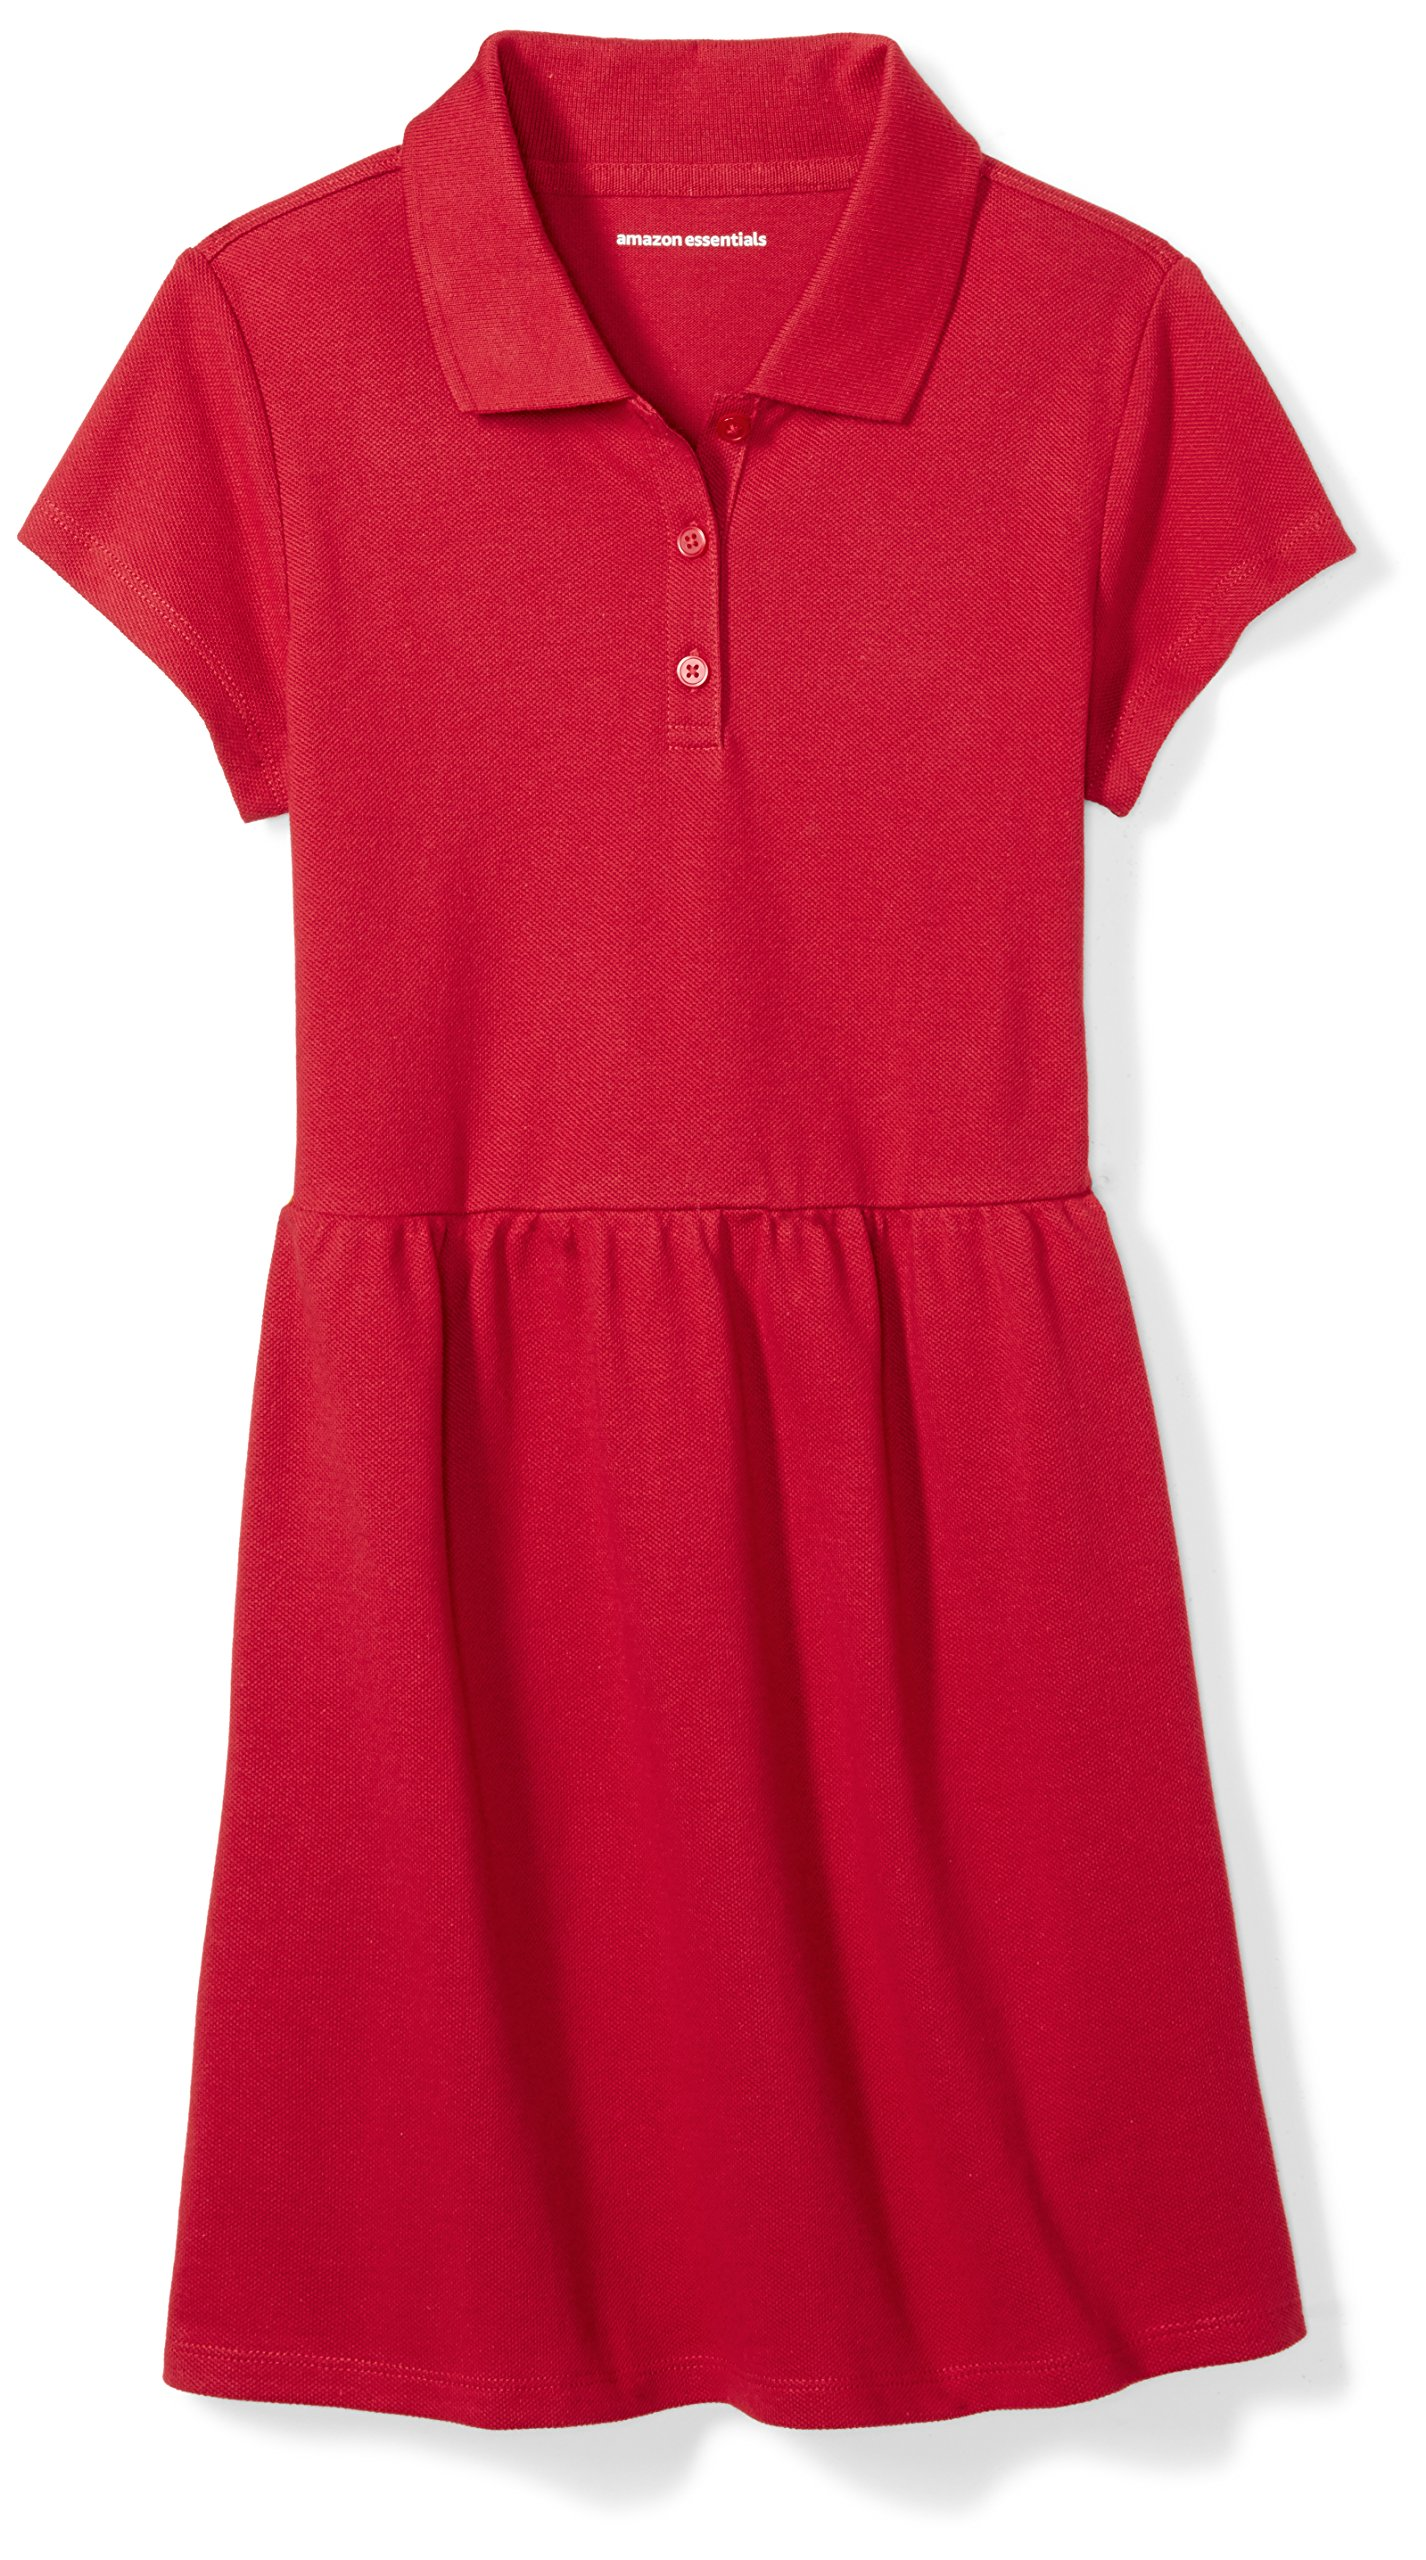 Amazon Essentials Girls' Short-Sleeve Polo Dress, Scooter Red, M (8)